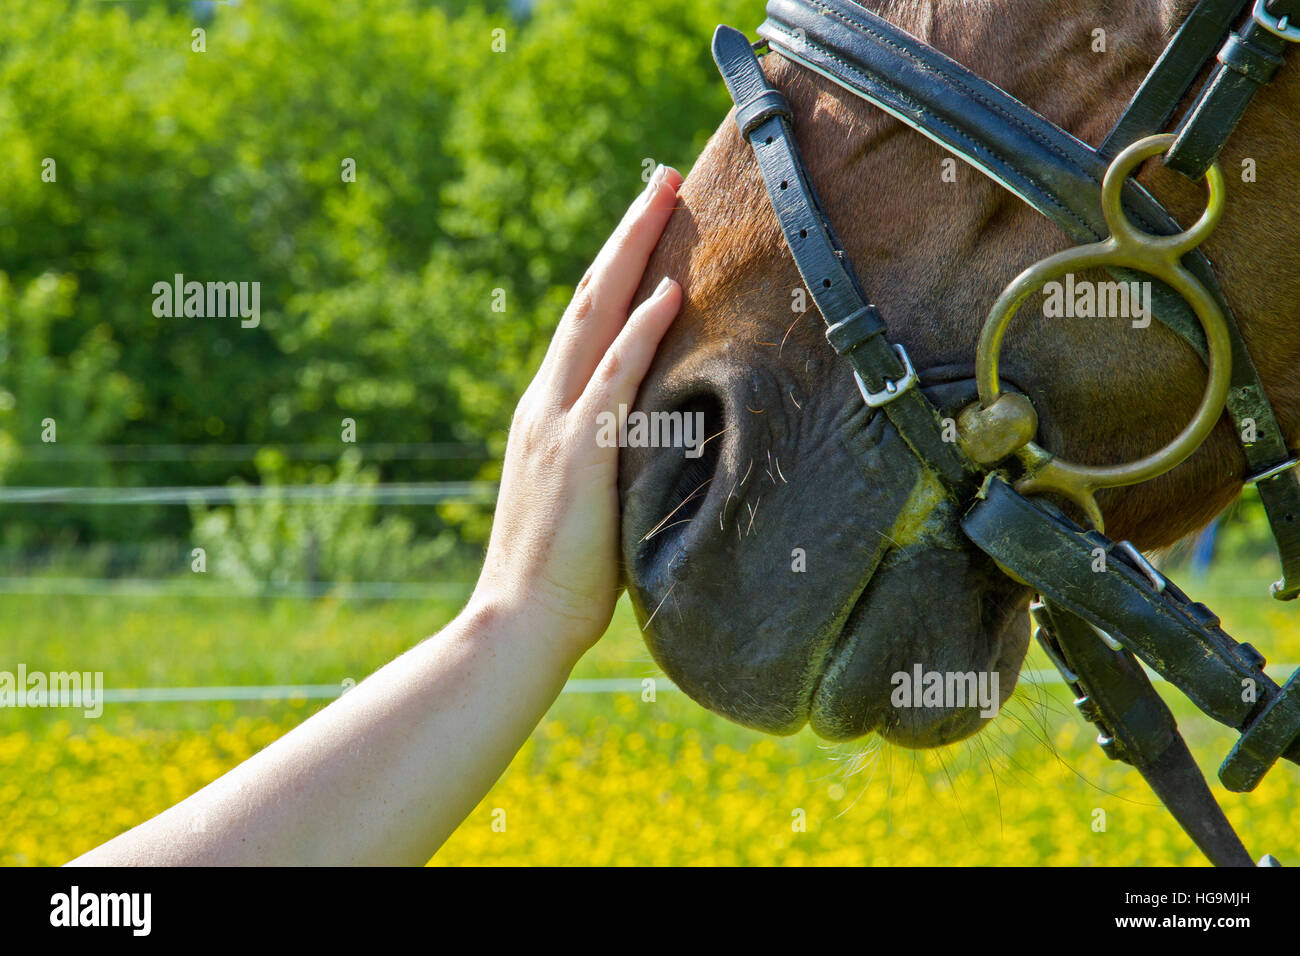 Hand of a woman makes a friendly gesture to a horse by stoking it's head Stock Photo